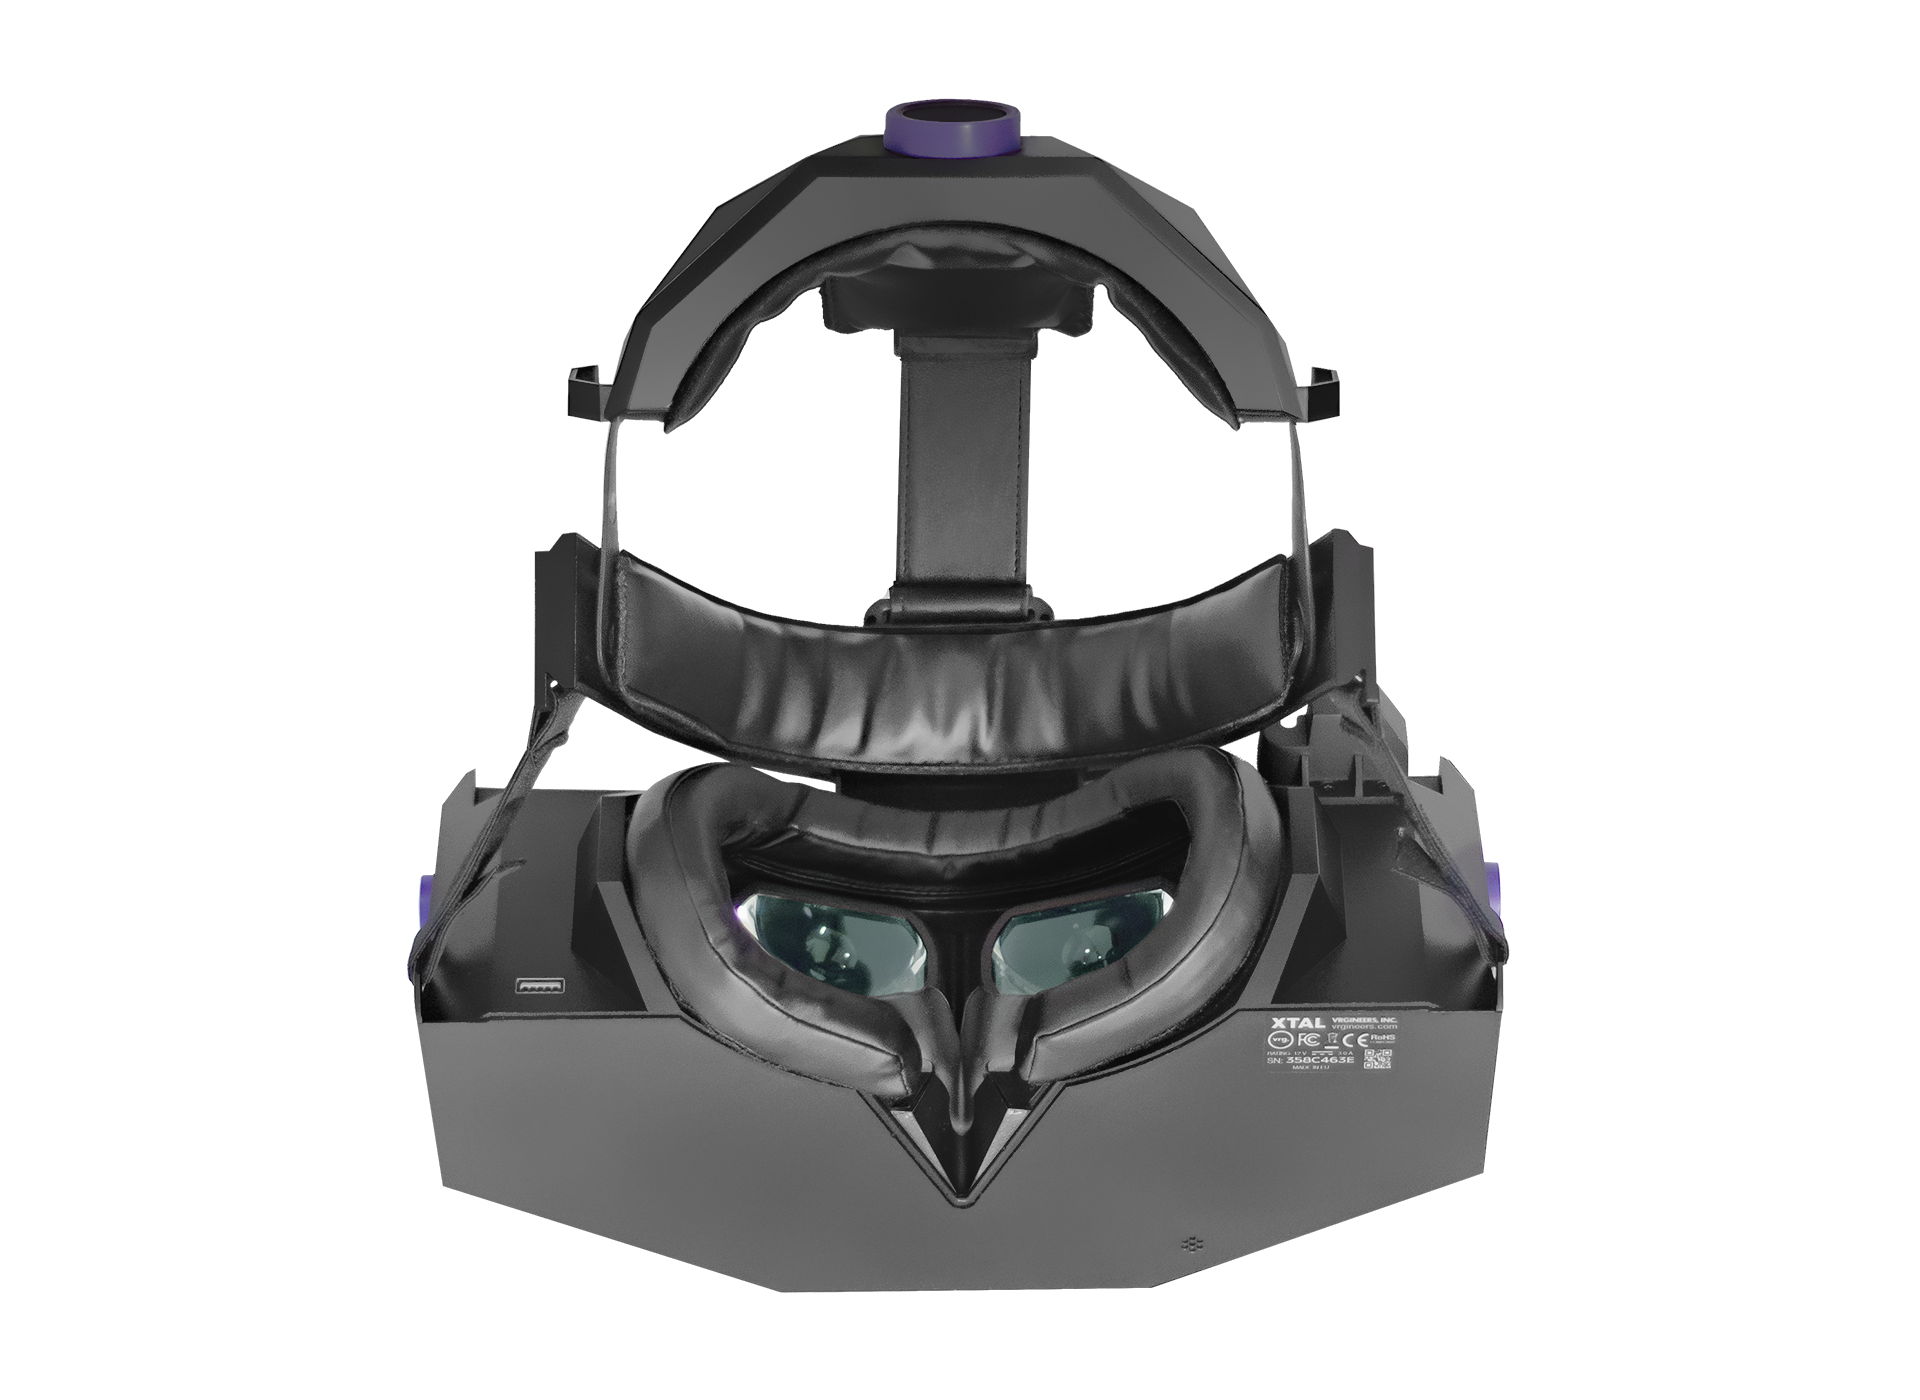 XTAL 5K high-end VR headset bottom view lence exposed